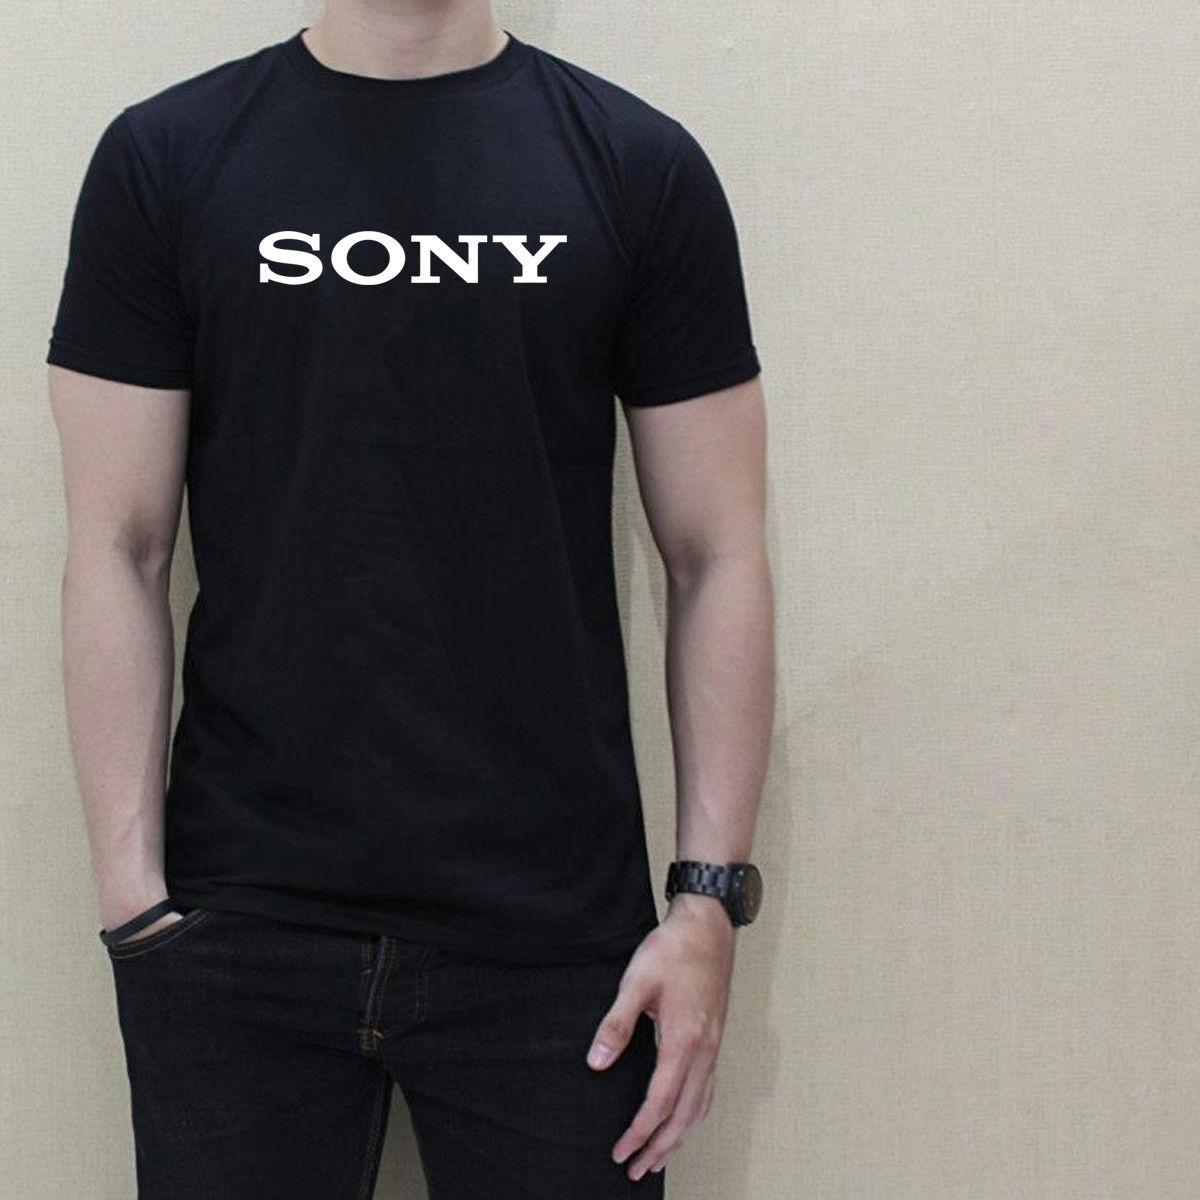 192e00e3e41 SONY LOGO MOBILE MEDIA Men Black White T Shirt 100% Cotton Graphic Tee  Summer Hot Sale New Tee Print Men Tee Shirt Casual Man And T Shirts As Tee  Shirts ...